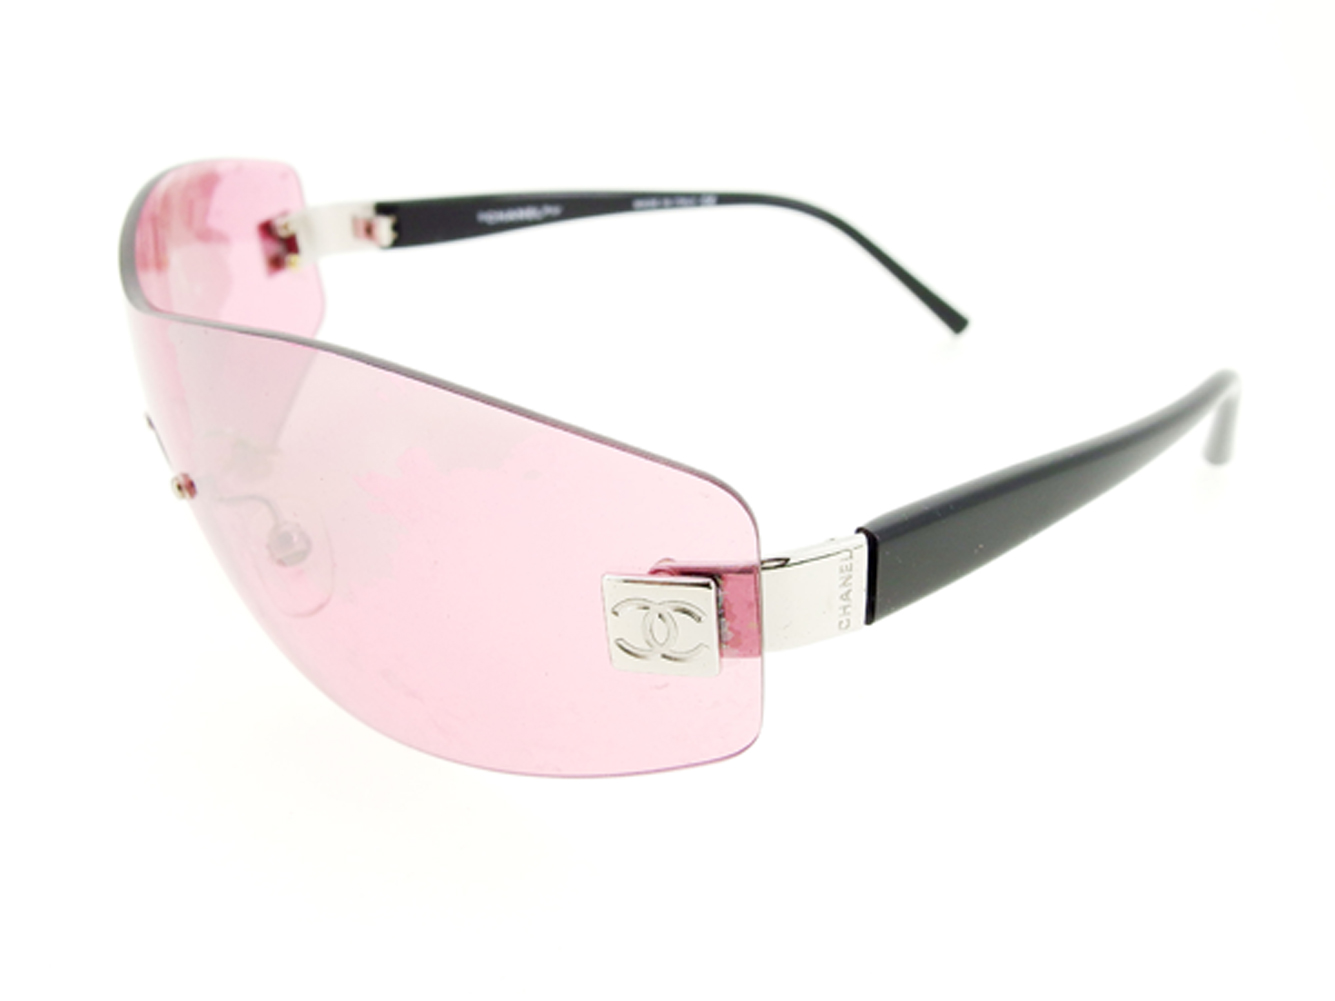 31bf00fa800 Sale T7490 which there is Chanel CHANEL sunglasses glasses eyewear Lady s  here mark one-length pink black silver plastic X silver metal fittings  reason in